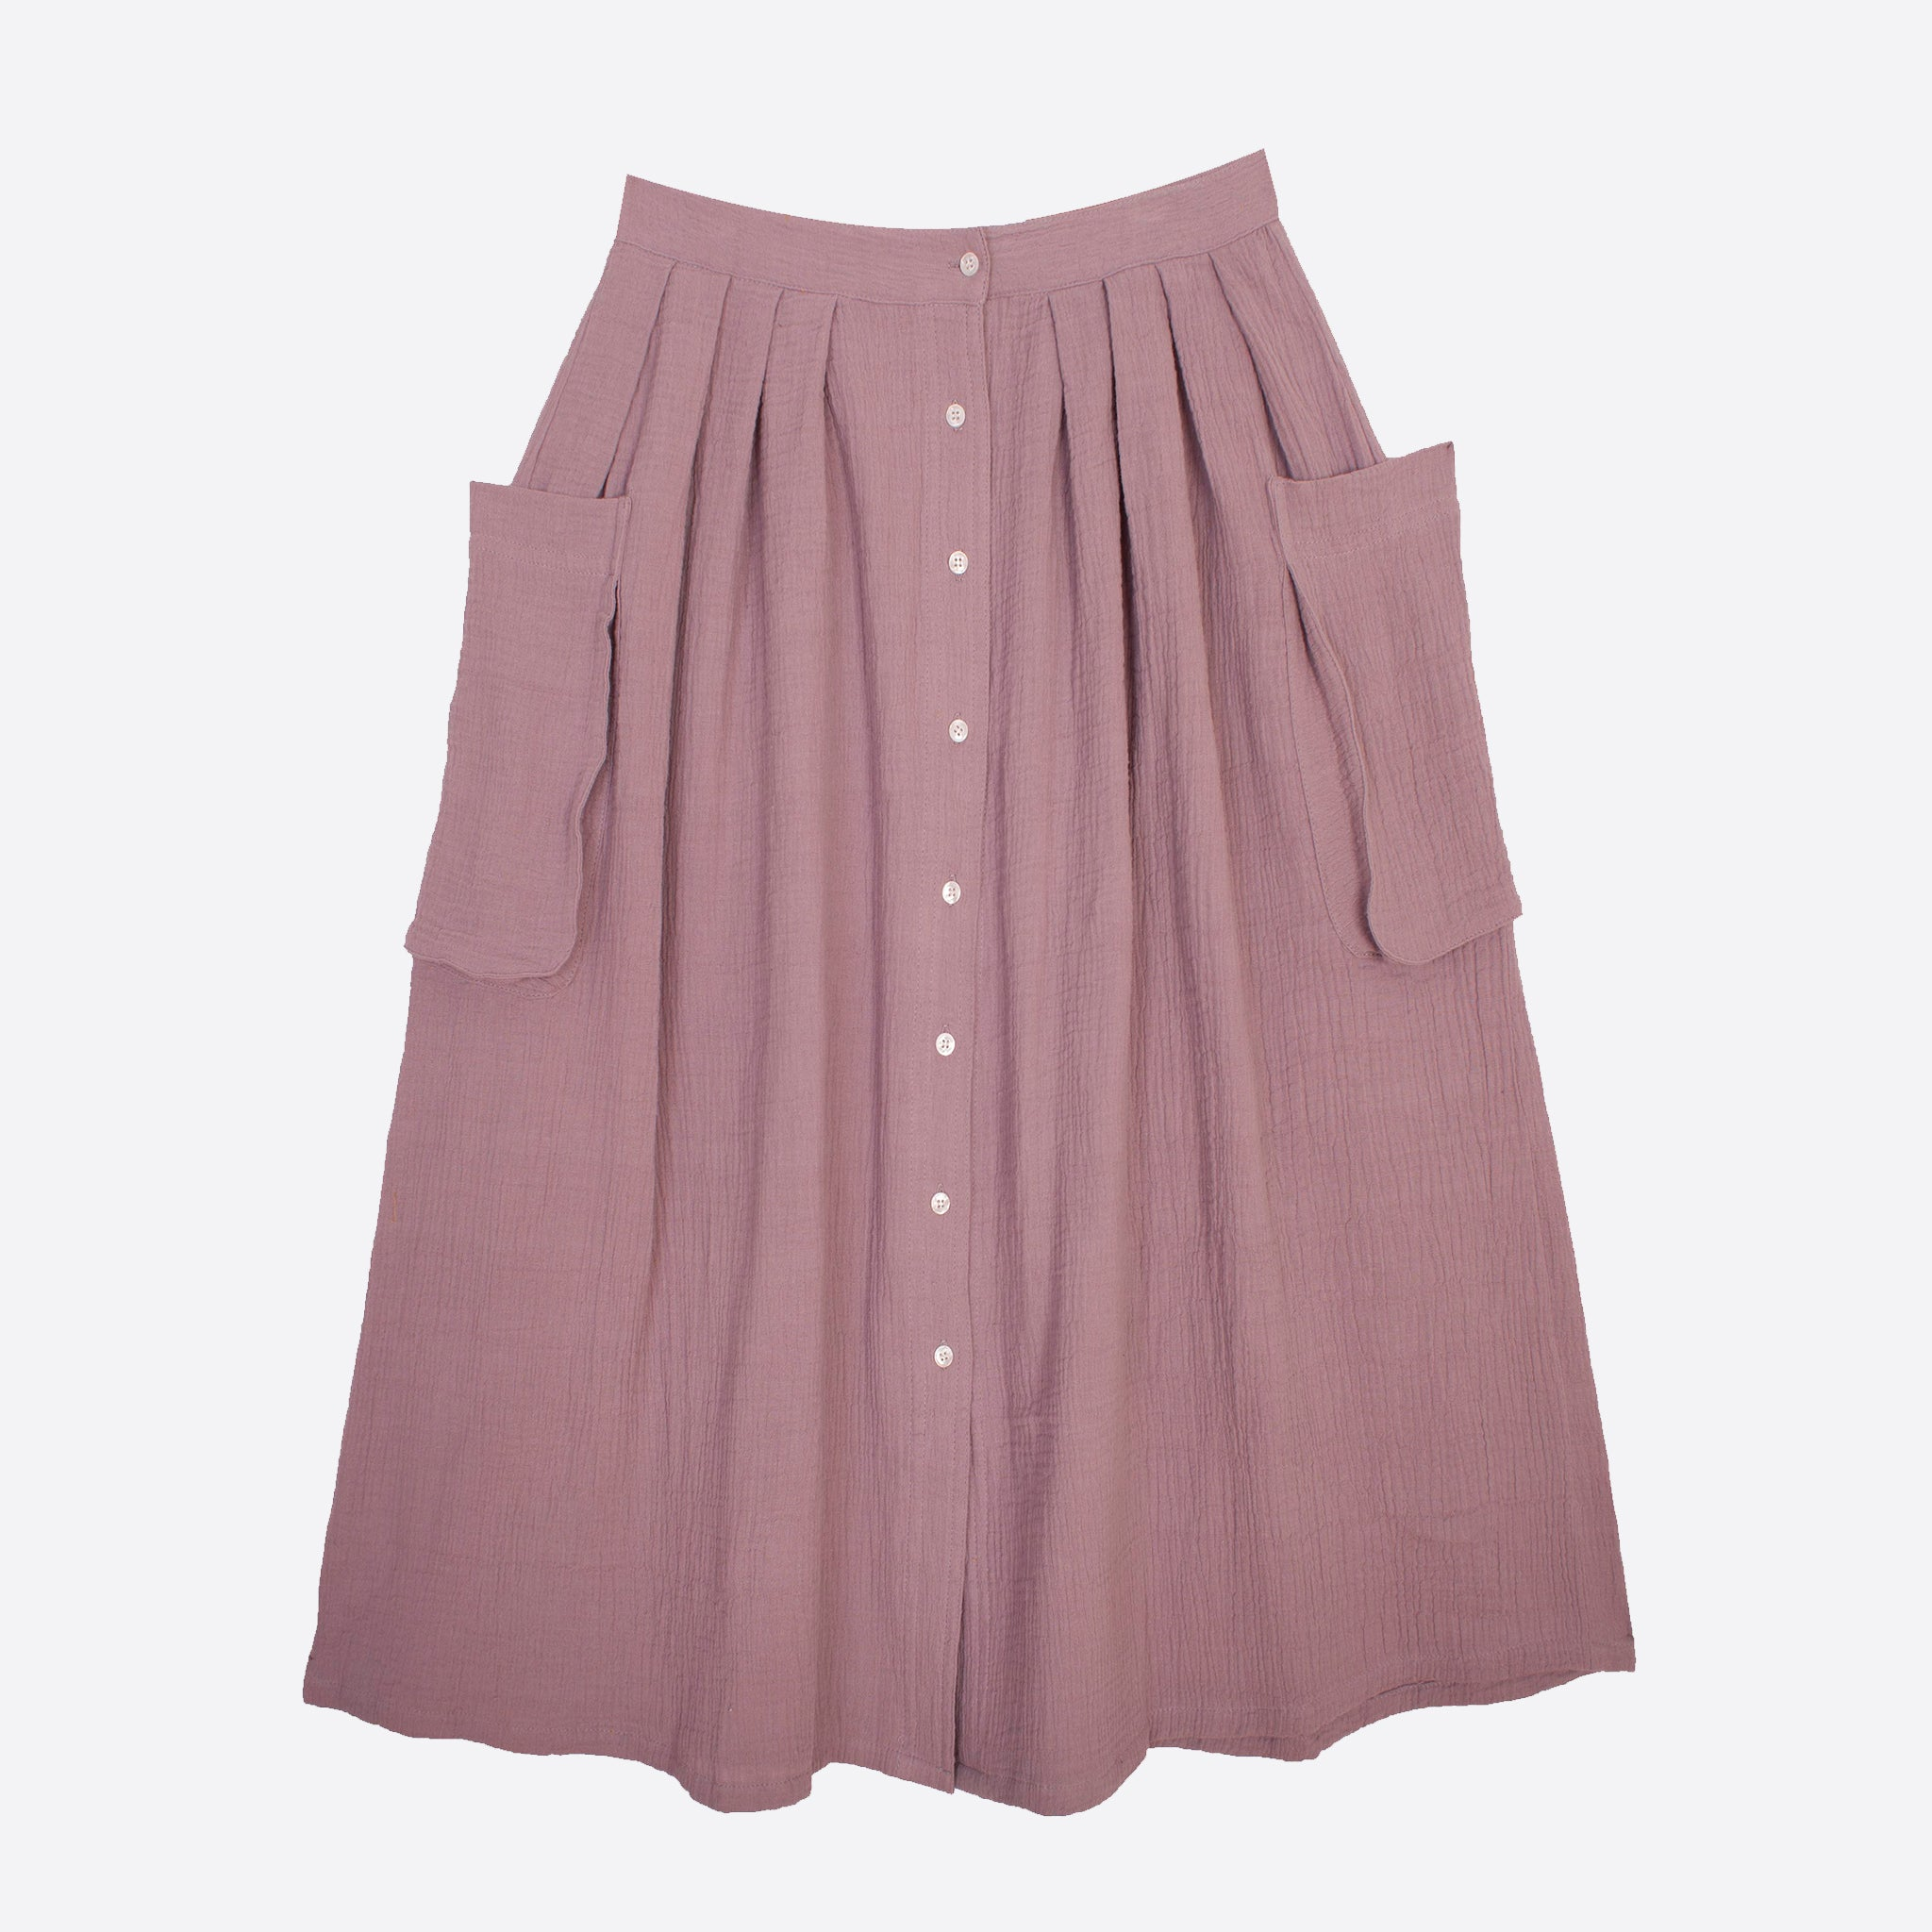 LF Markey Florian Skirt in Lavender